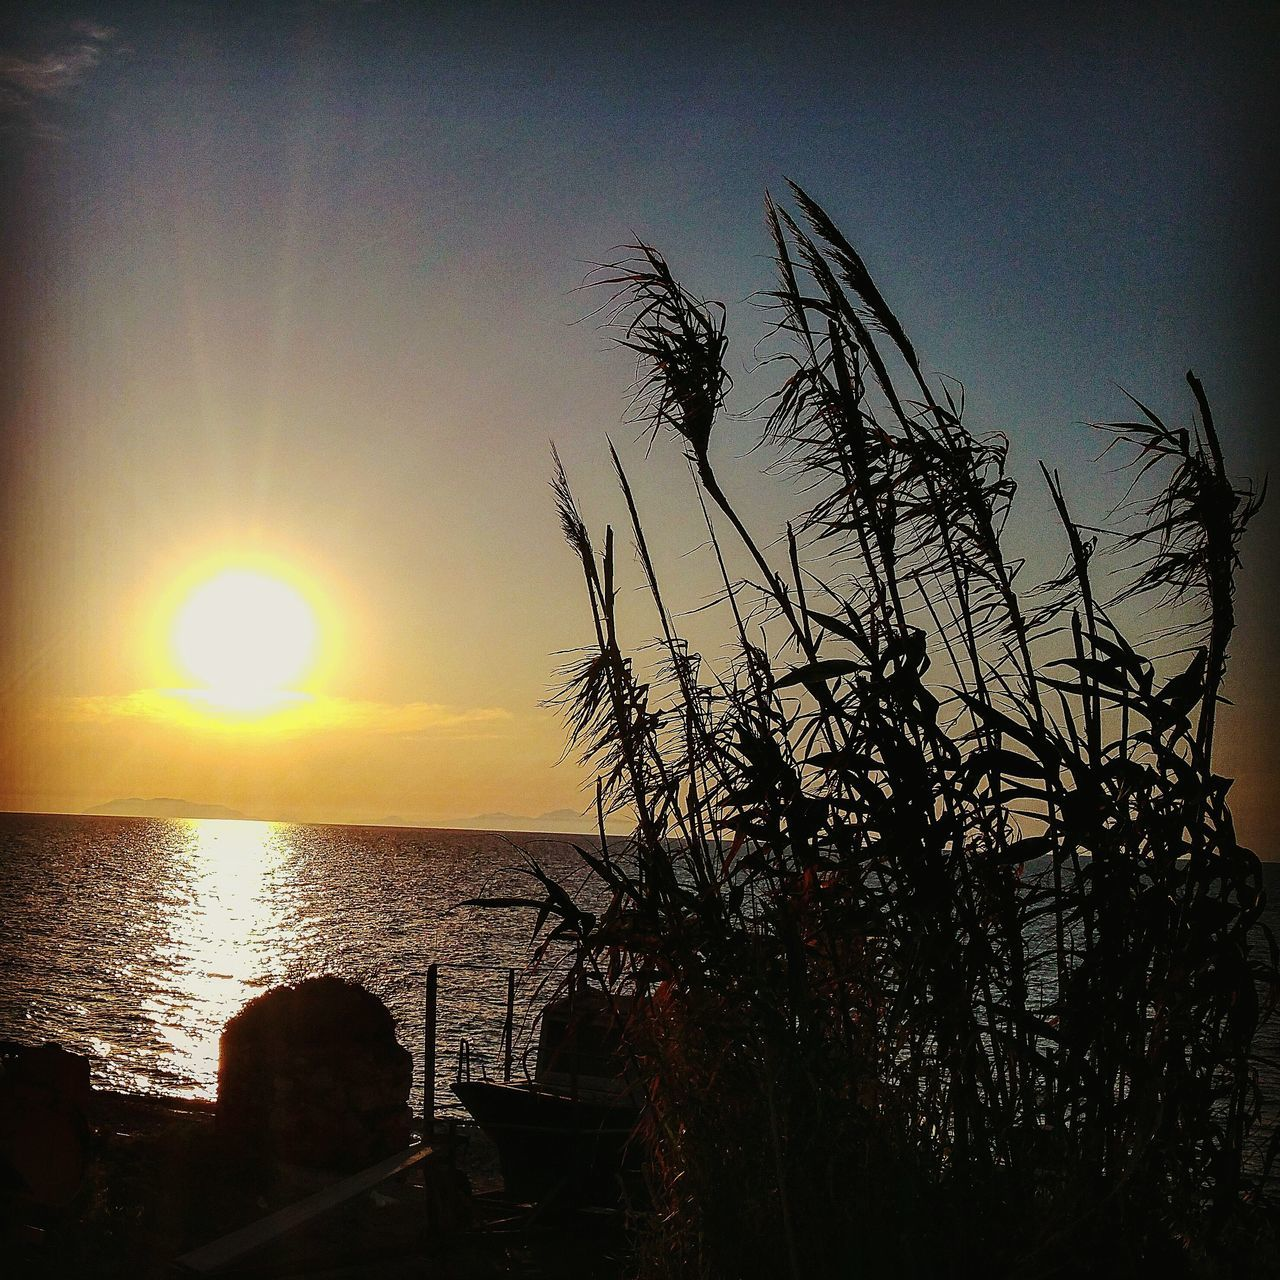 Sicily ❤️❤️❤️ Nature Beauty In Nature From My Point Of View EyeEmGalley Beach Life Italy Gente Di Mare Sicily Mare ❤ Ossigeno Beachphotography Isole Eolie Tramonto Vitadamare Sicily, Italy Frommypointofview Peace And Quiet Peaceful